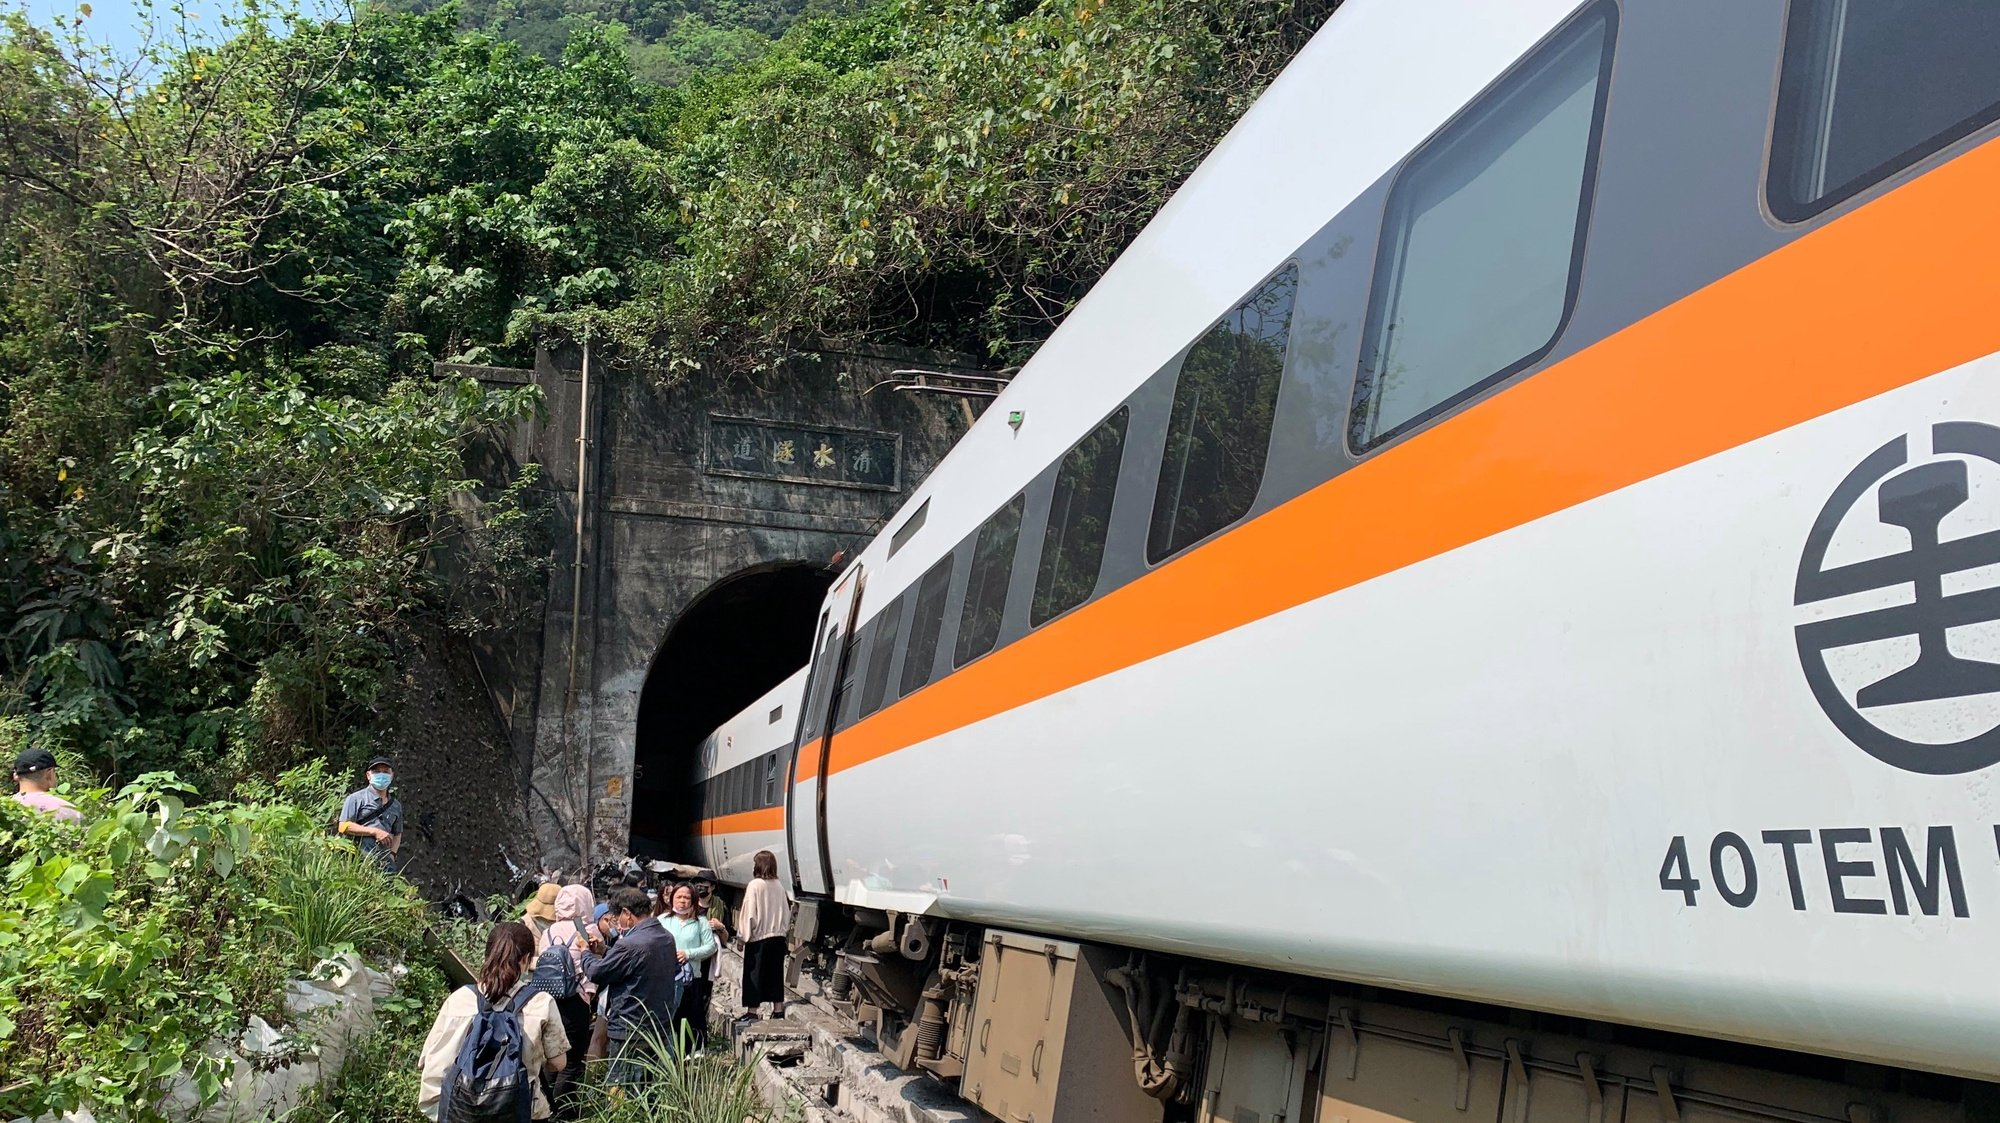 epa09111574 A handout photo made available by Taiwan's National Fire Agency shows people walking beside a train which derailed in a tunnel north of Hualien County, eastern Taiwan, 02 April 2021. At least 36 people died and many others were injured when a train carrying 350 people derailed in a tunnel north of Hualien in eastern Taiwan on 02 April.  EPA/Taiwan National Fire Agency HANDOUT  HANDOUT EDITORIAL USE ONLY/NO SALES